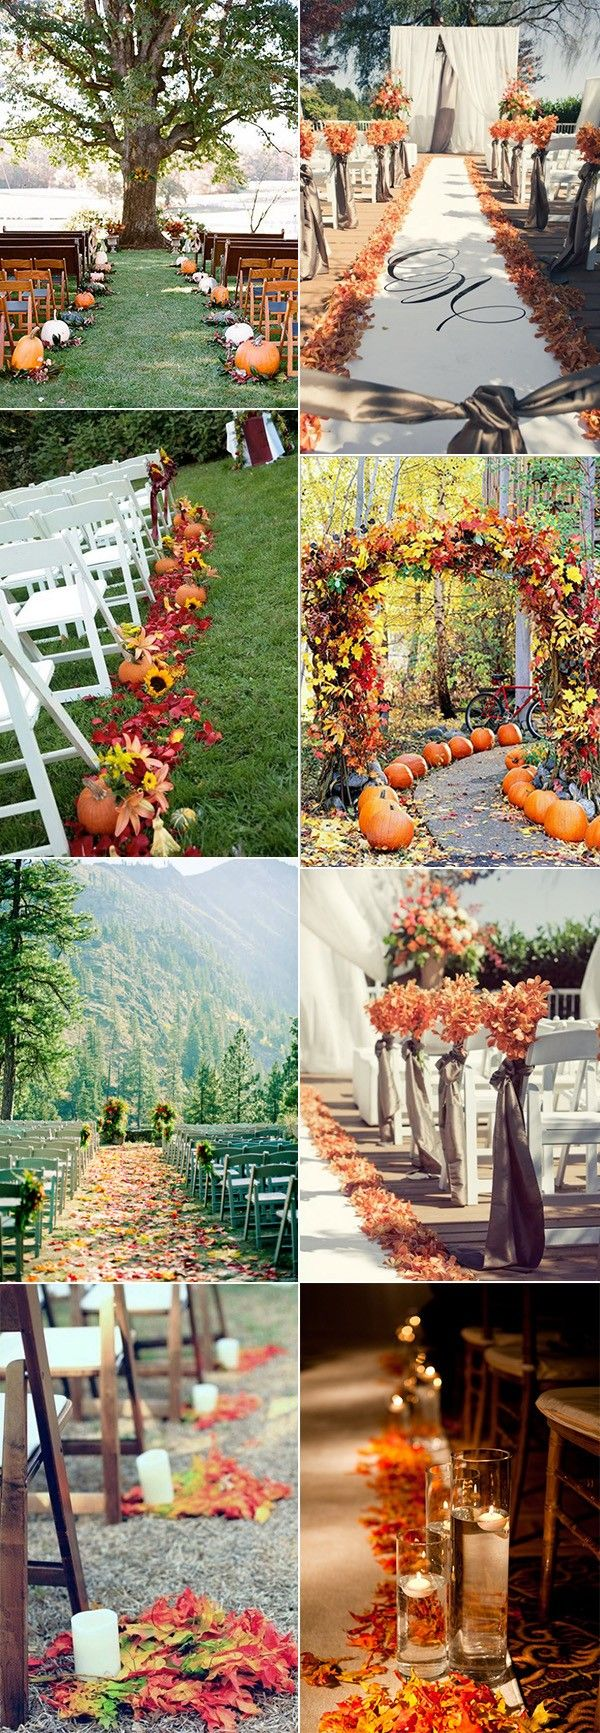 70 Amazing Fall Wedding Ideas For 2018 Decoration Weddings And